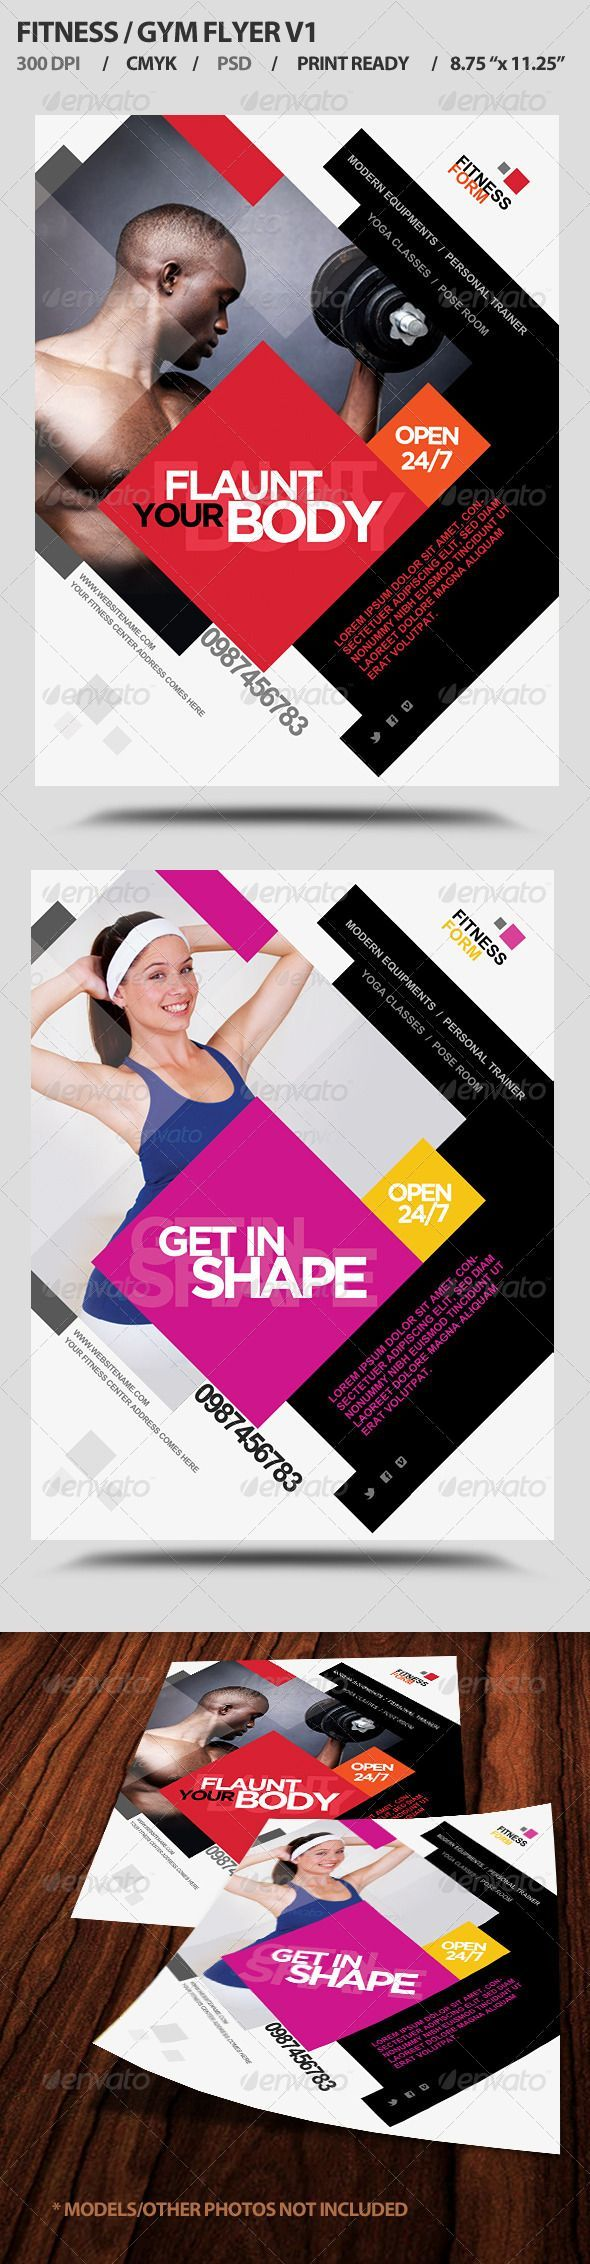 Gym promotional flyer template by Graphic River. Diagonals and asymmetry create energy in design. Viewers are also drawn in when they see people's faces and look where they see the models looking.